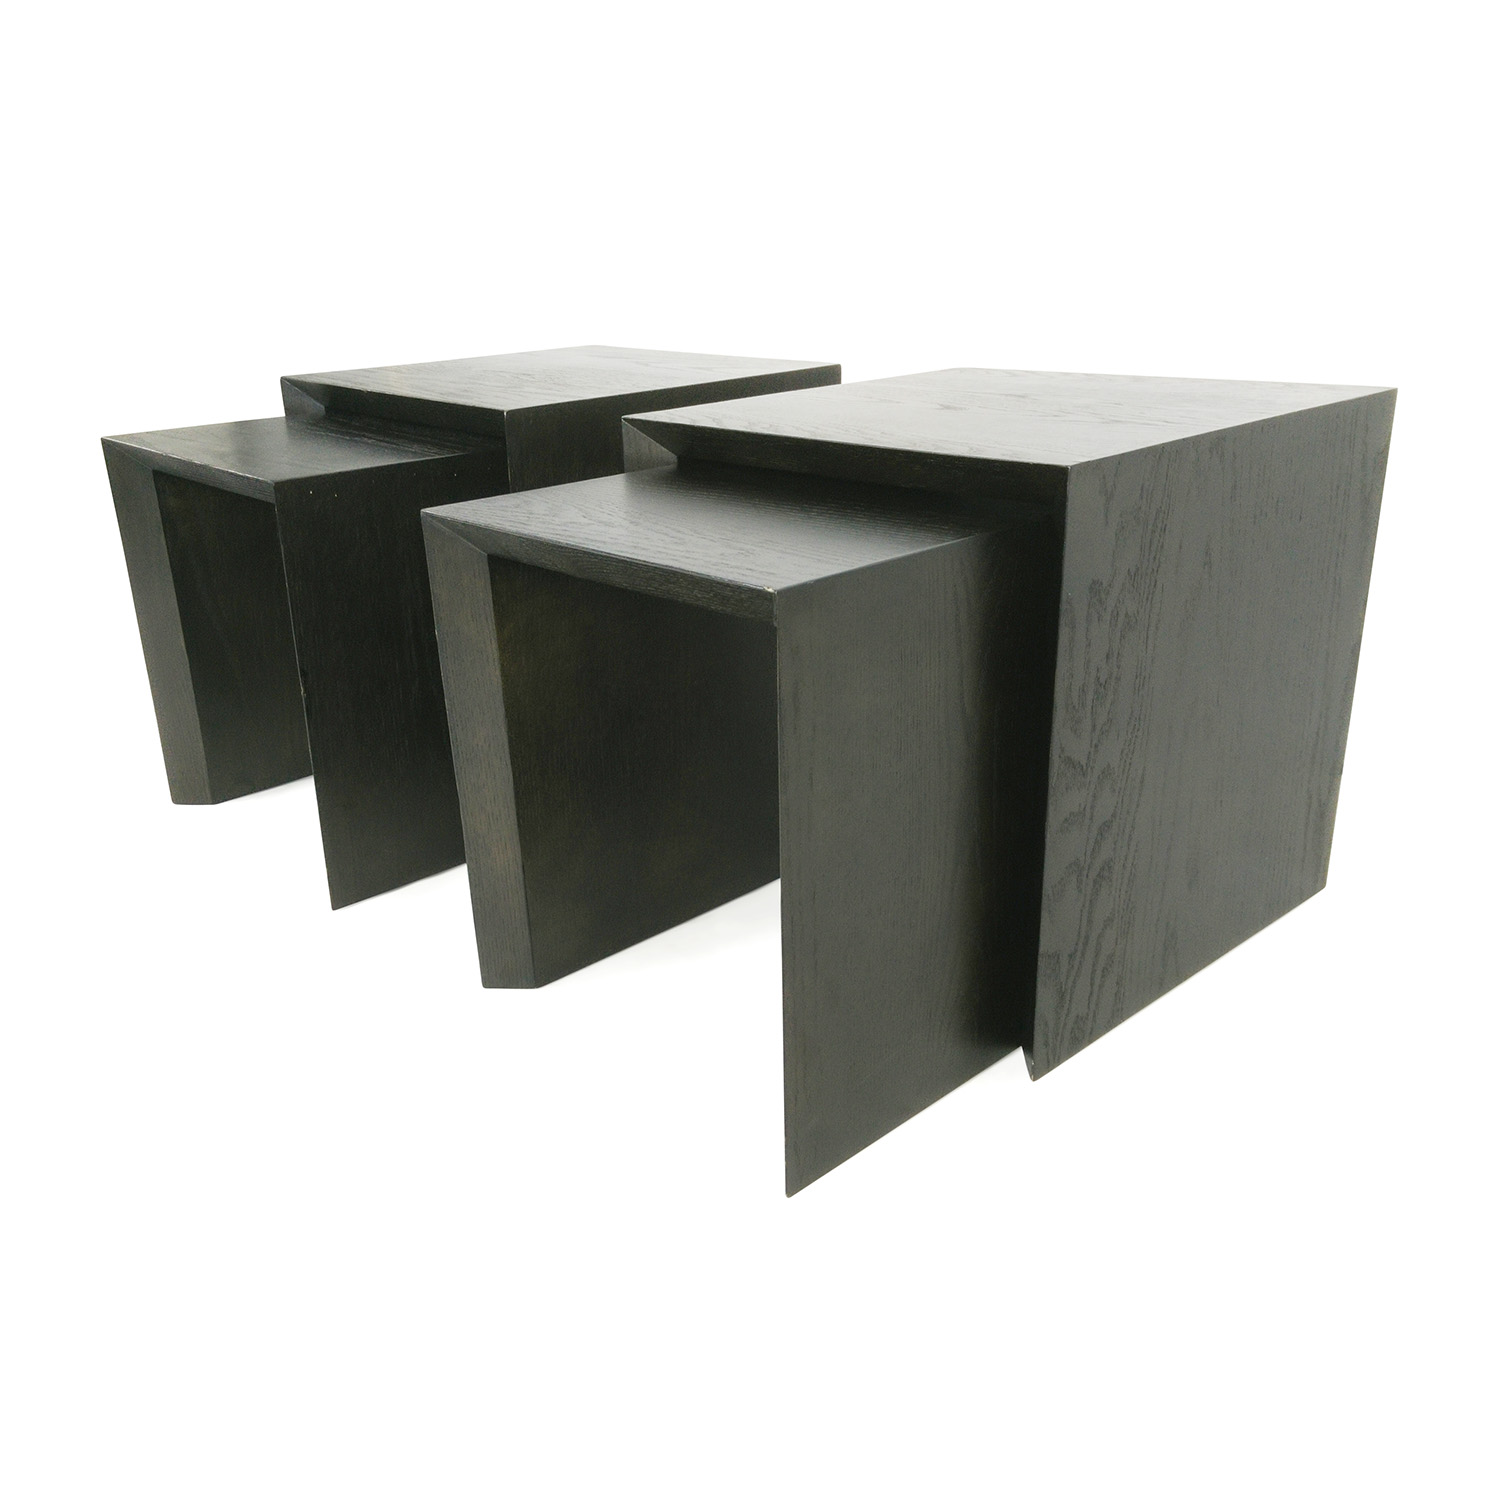 Pair of Nested Side Tables Dark Chocolate